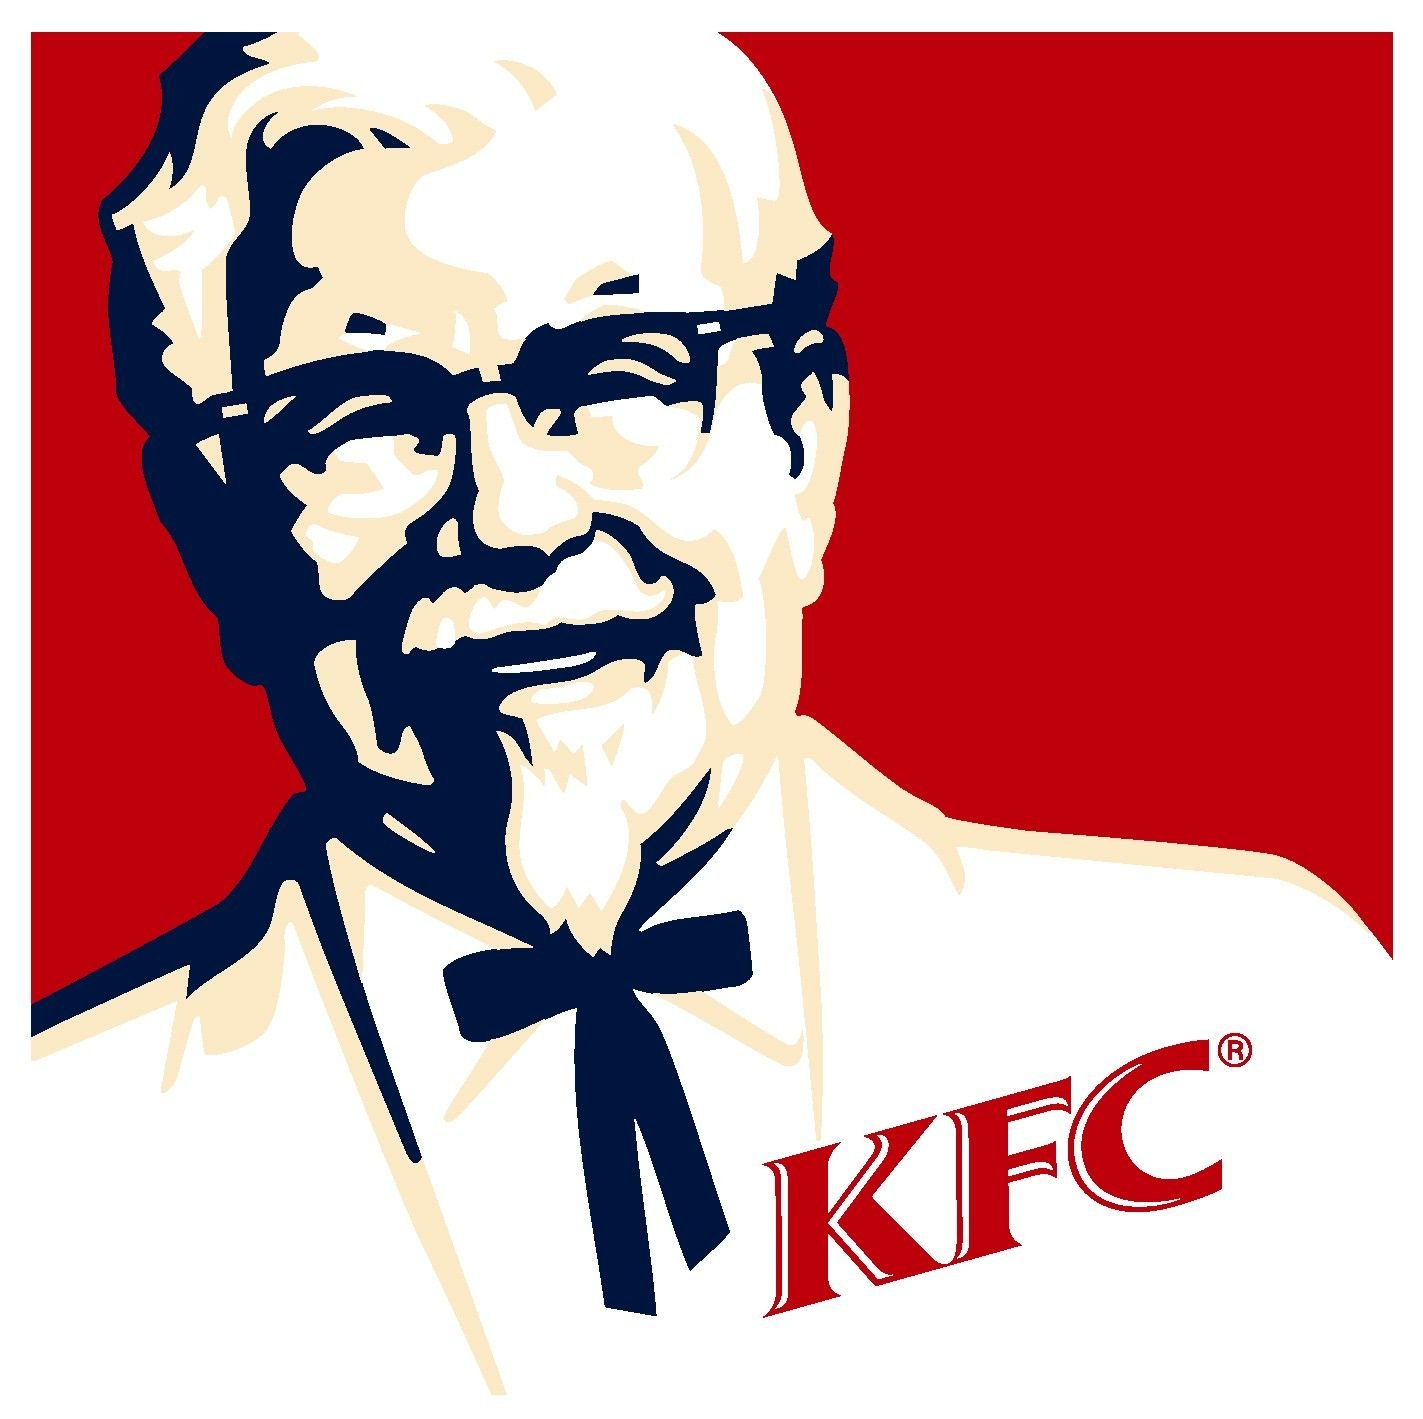 kfc corporation v marion kay company inc